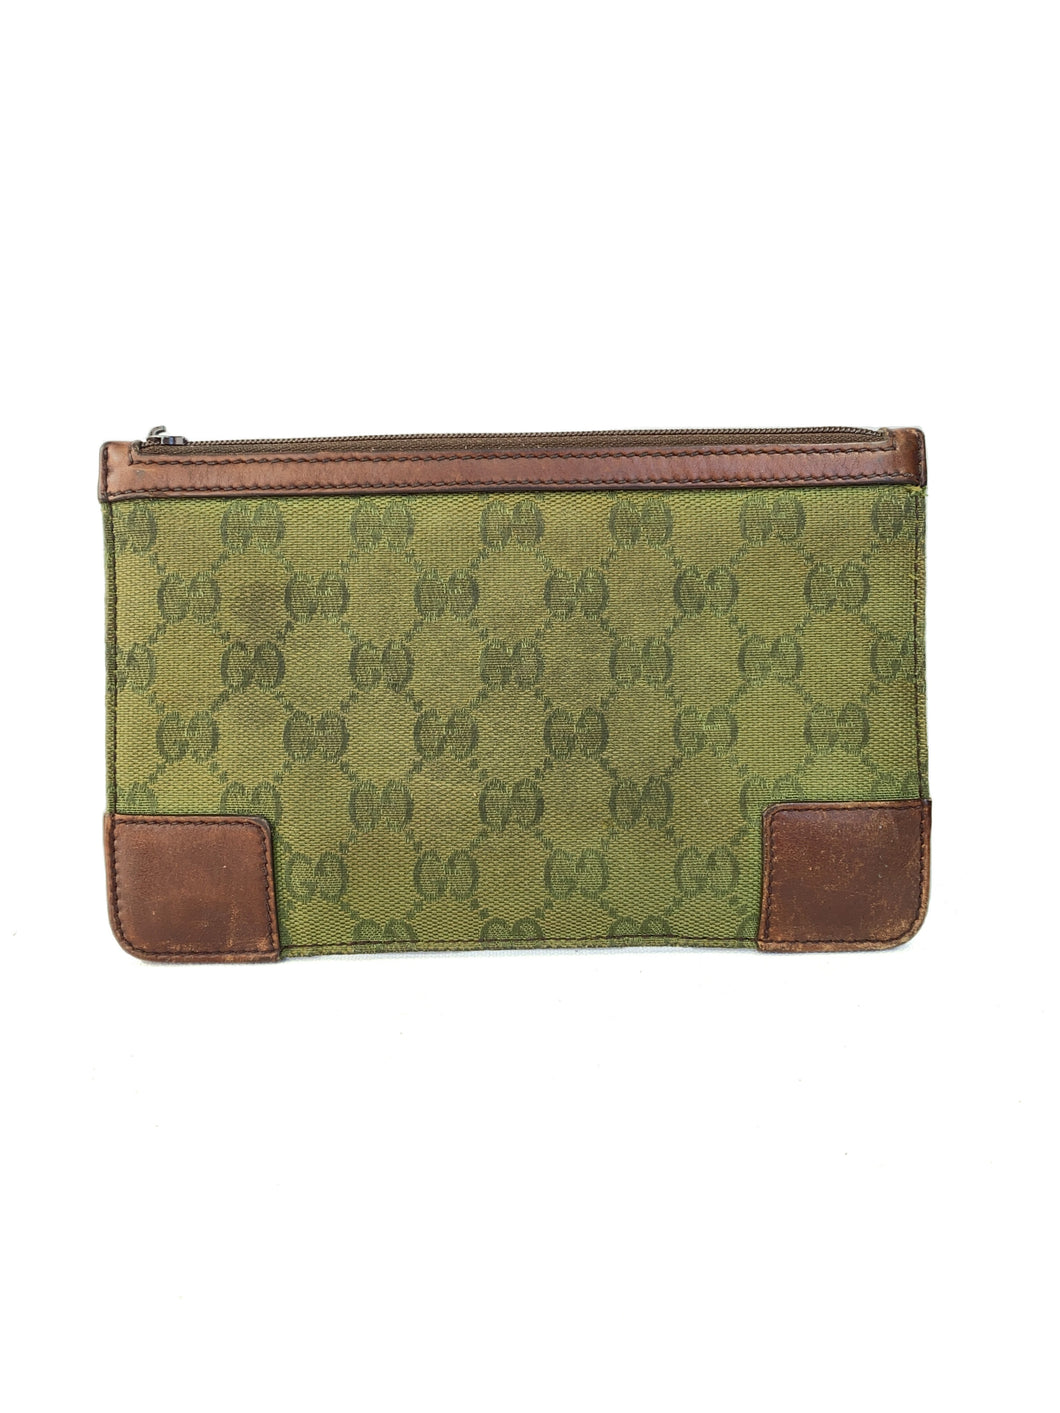 Gucci green and brown signature zip pouch AS IS - My Girlfriend's Wardrobe LLC